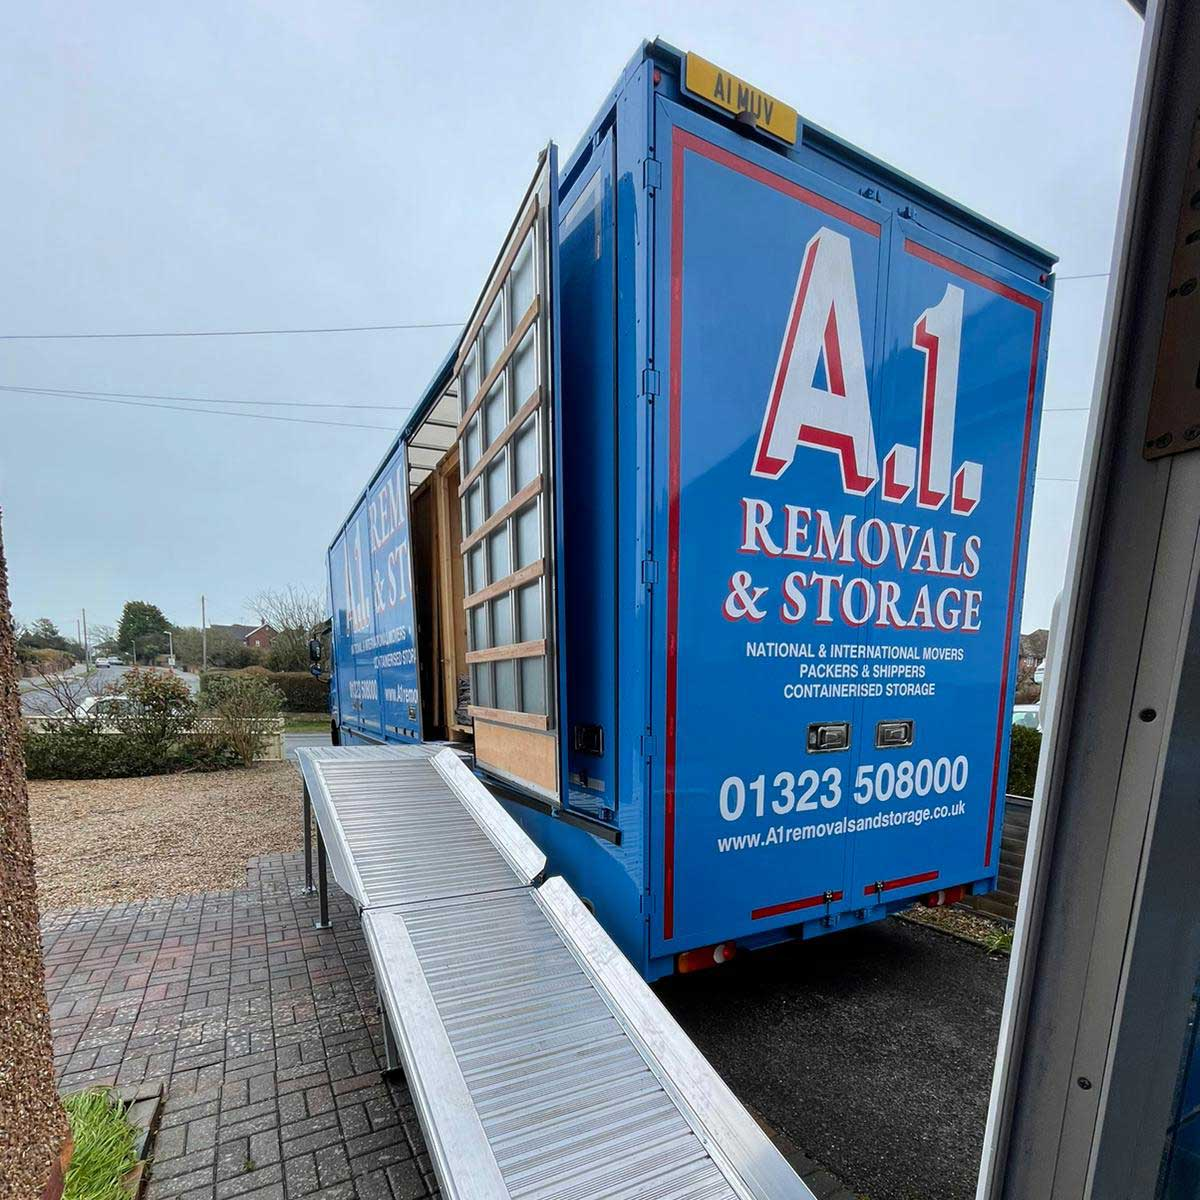 A1 Removals & Storage Truck with ramp down